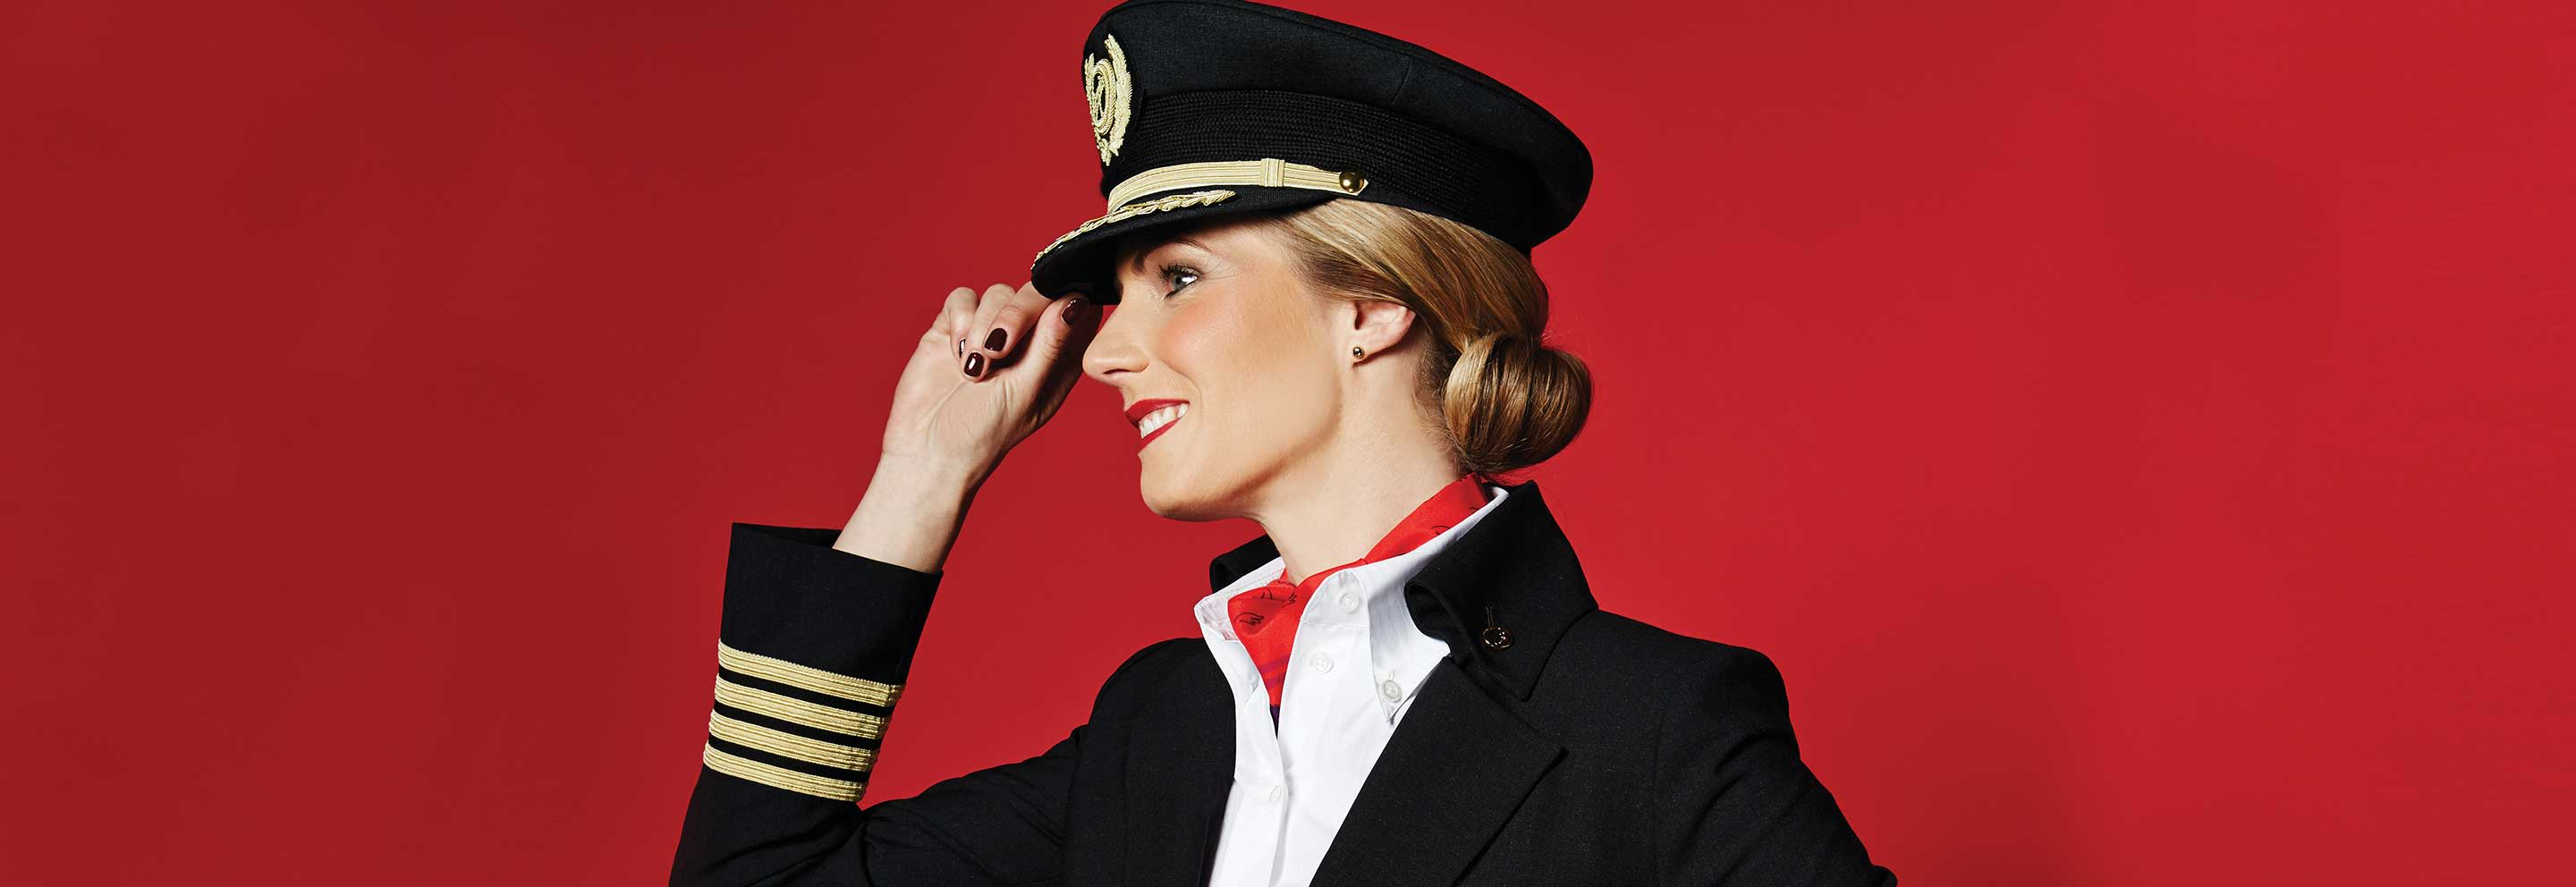 Image from Virgin Atlantic